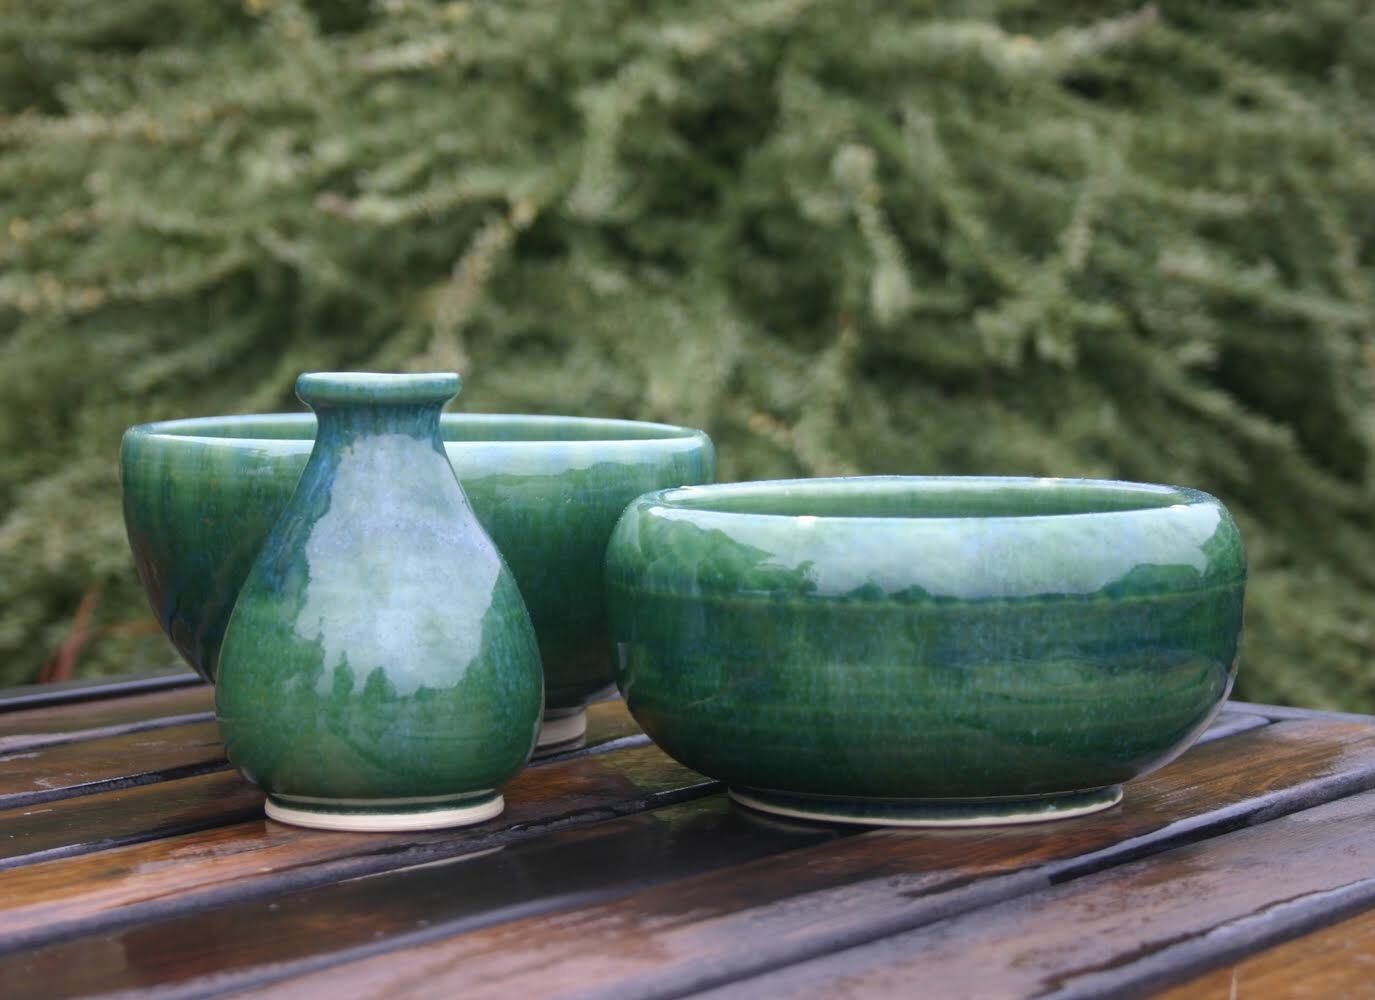 Now Showing In The Gallery At Georgies Portland Store Click Image To See Larger View On Images Shane A Lifelong Oregonian Started Making Pottery So He Could Donate Simple Bowls For Fundraising Events His